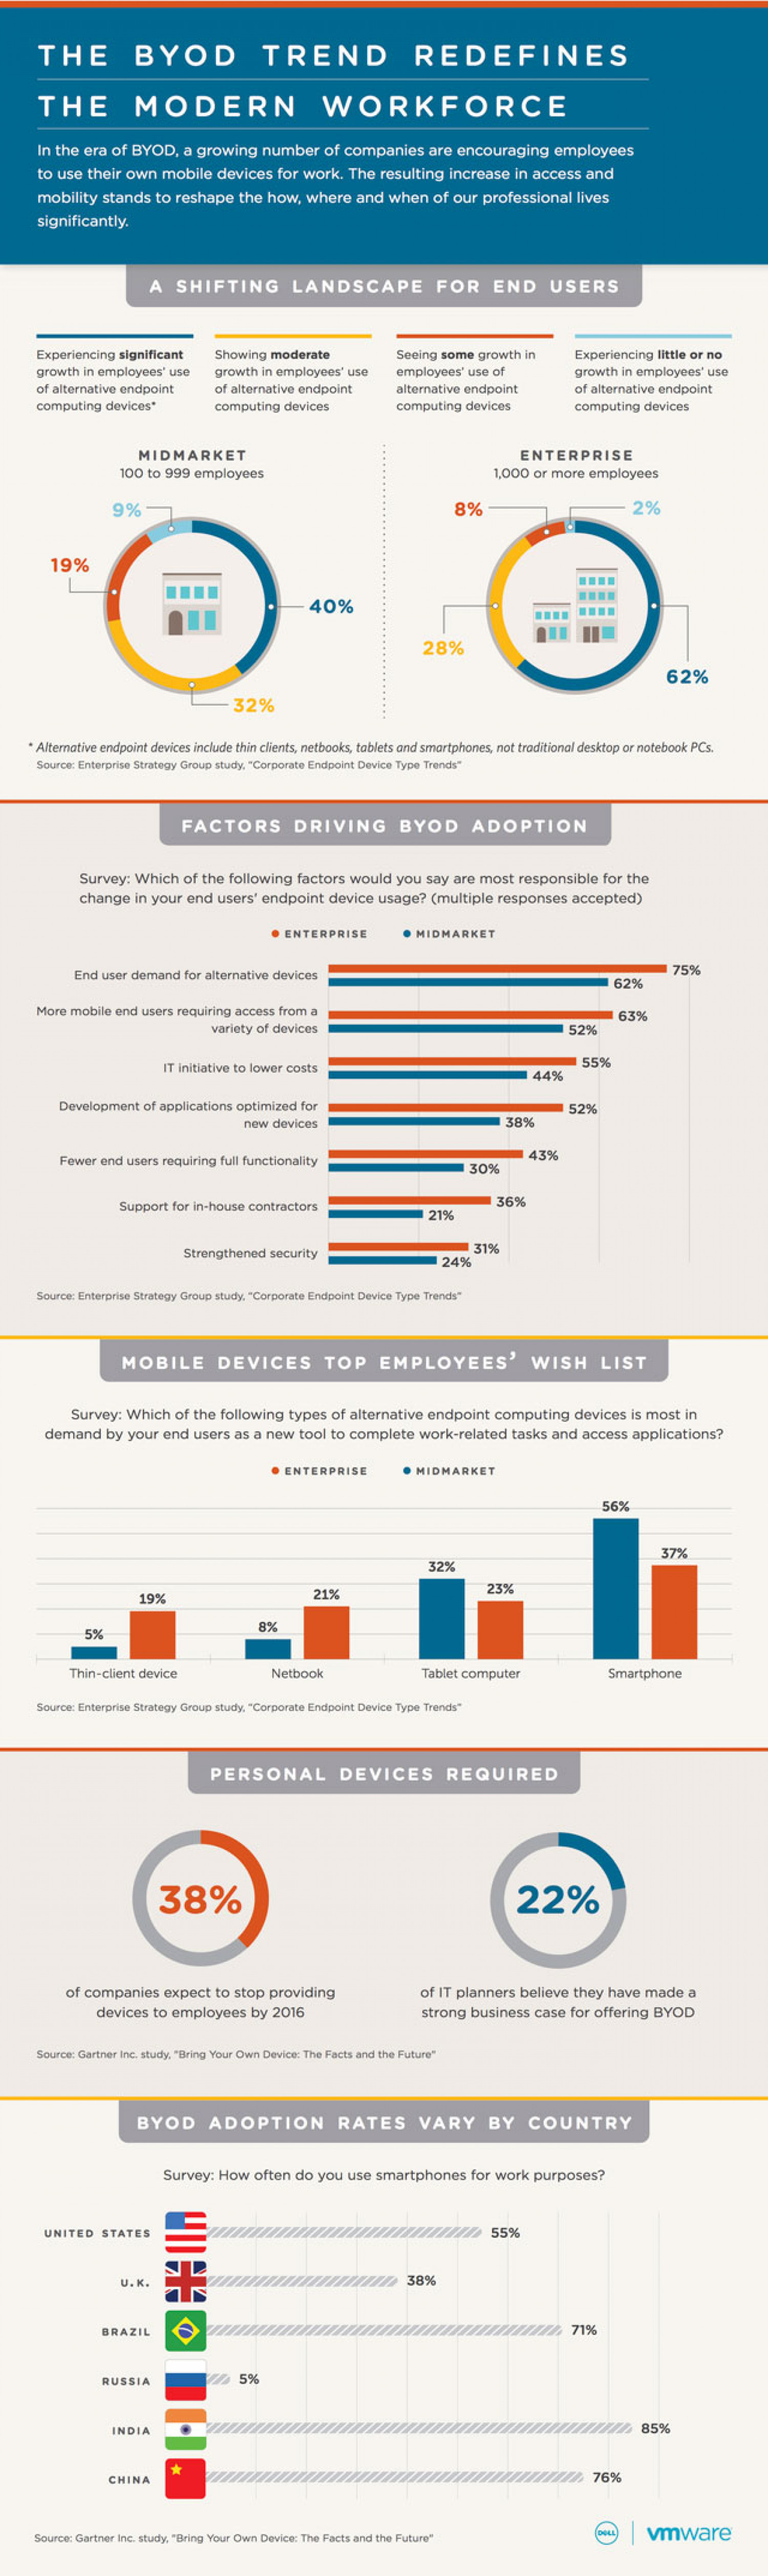 The BYOD Trend Redefines the Modern Workforce Infographic